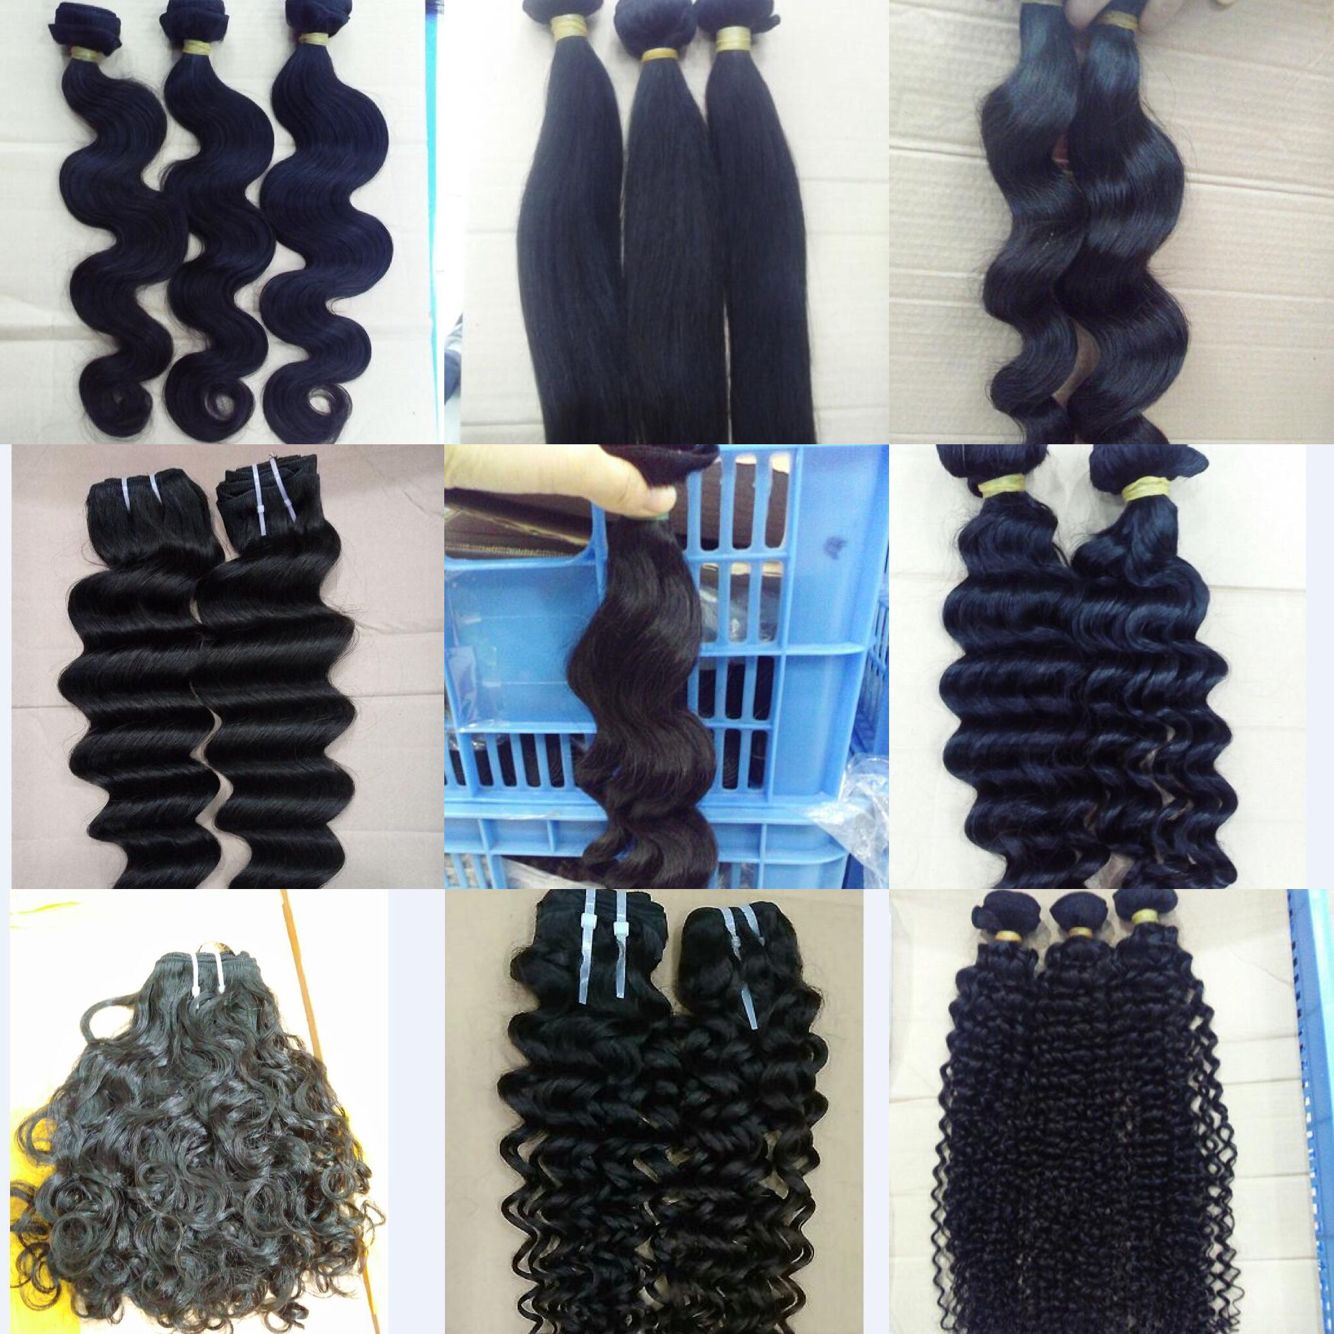 10A Single Bundle Collection Peruvian Raw Hair Unprocessed Hair Virgin Hair 1 Bundle in Wholesale Price